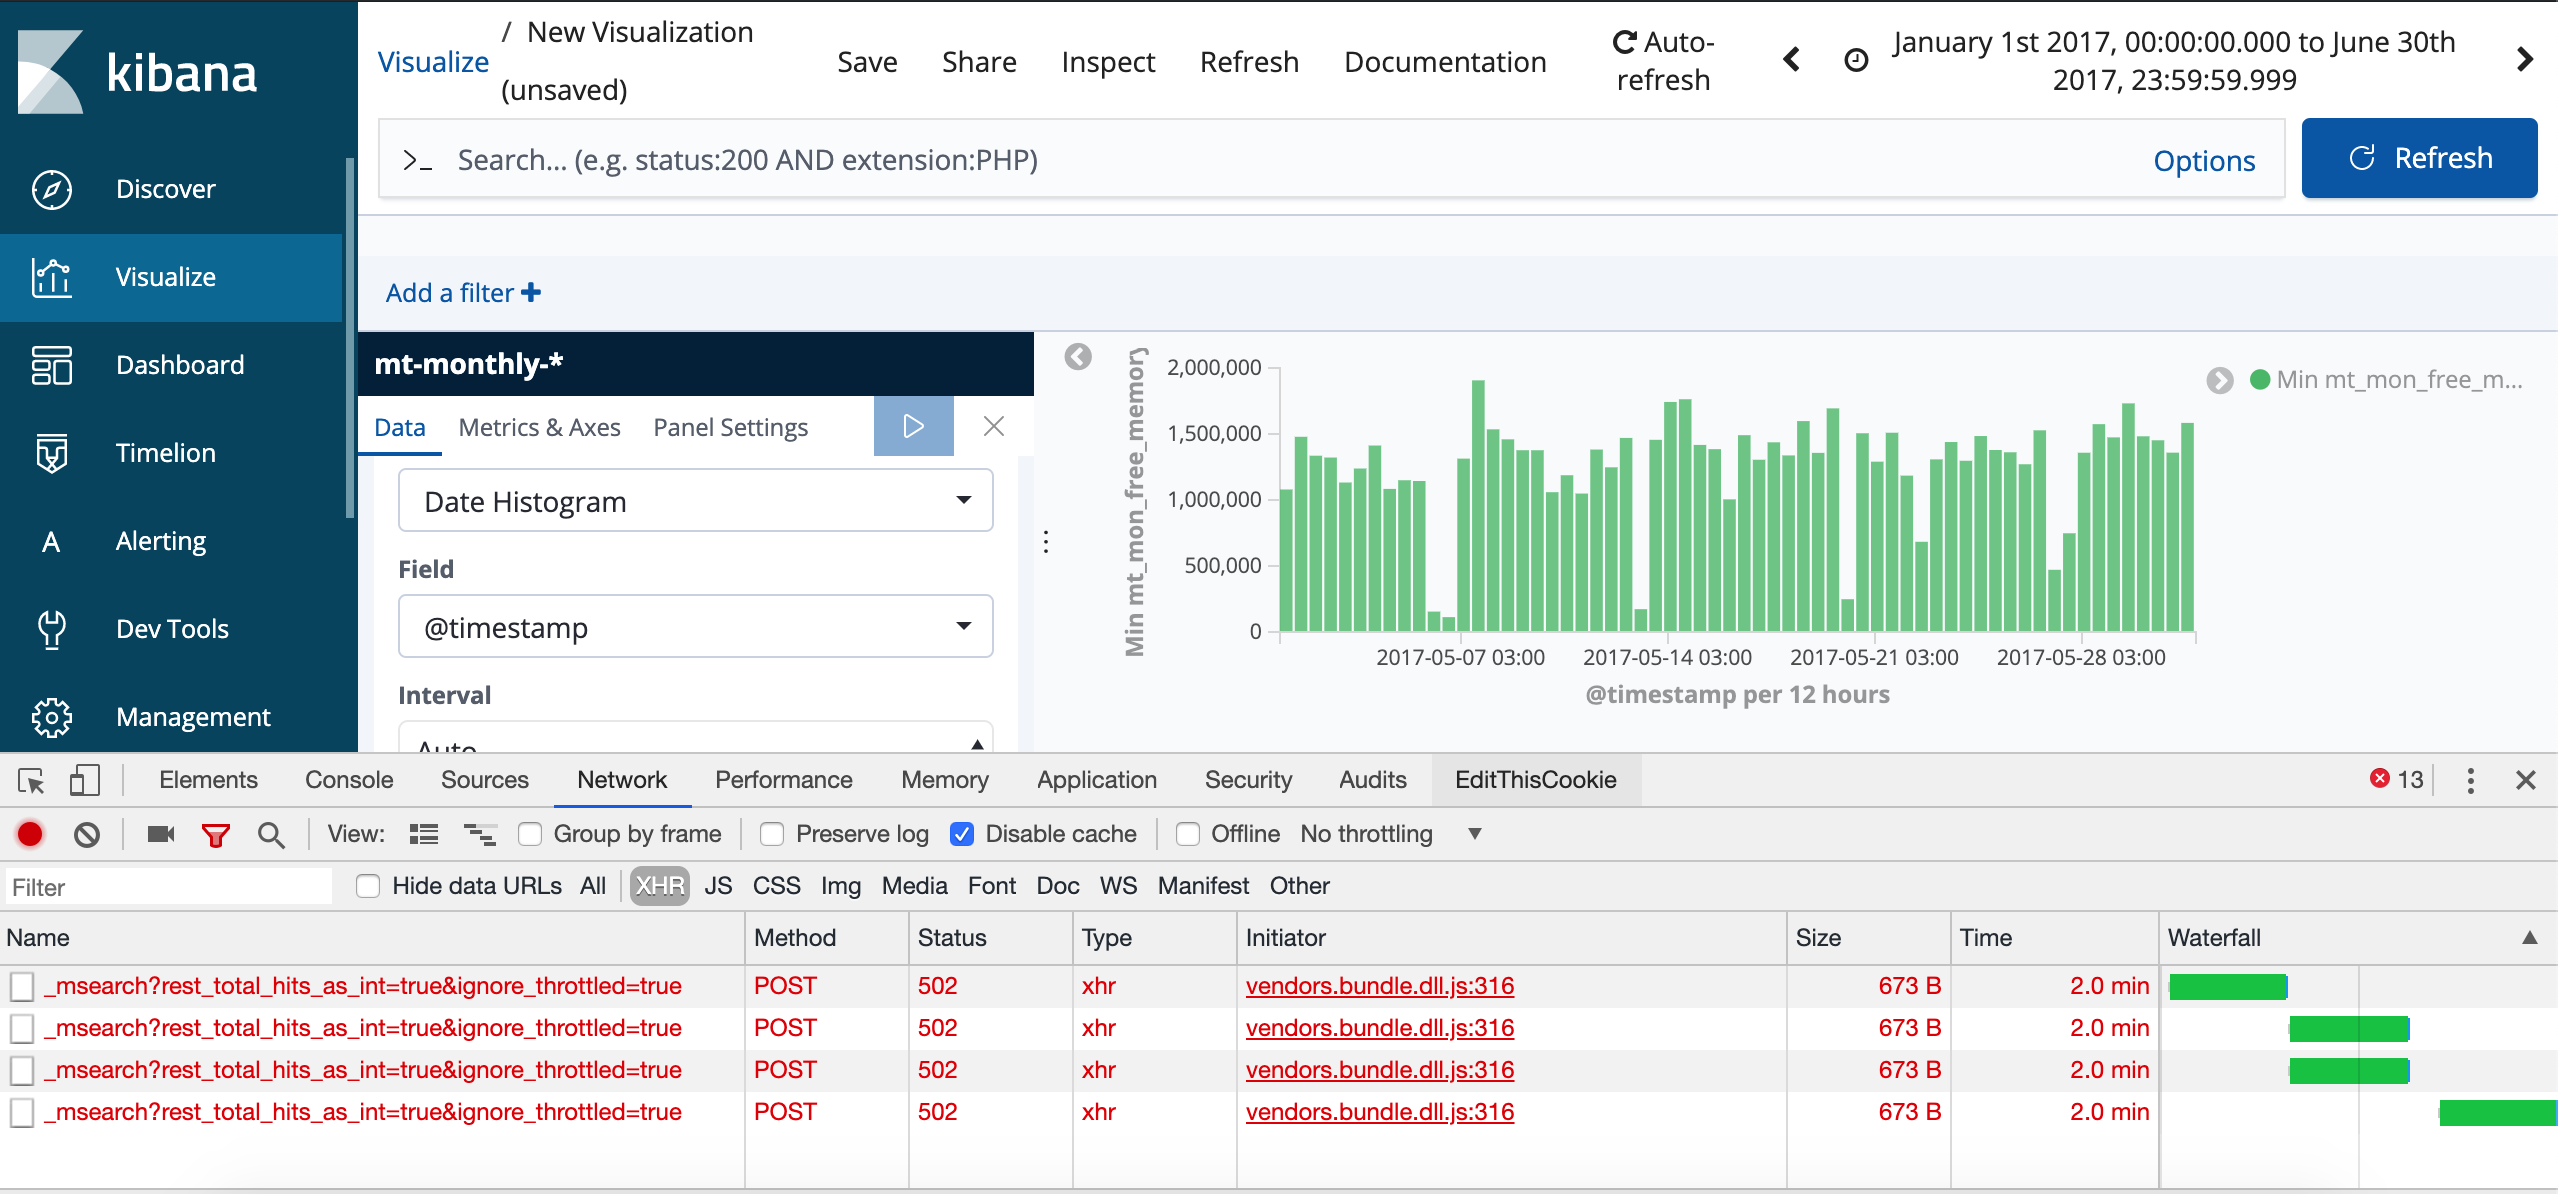 Kibana times out after 120s · Issue #14043 · elastic/kibana